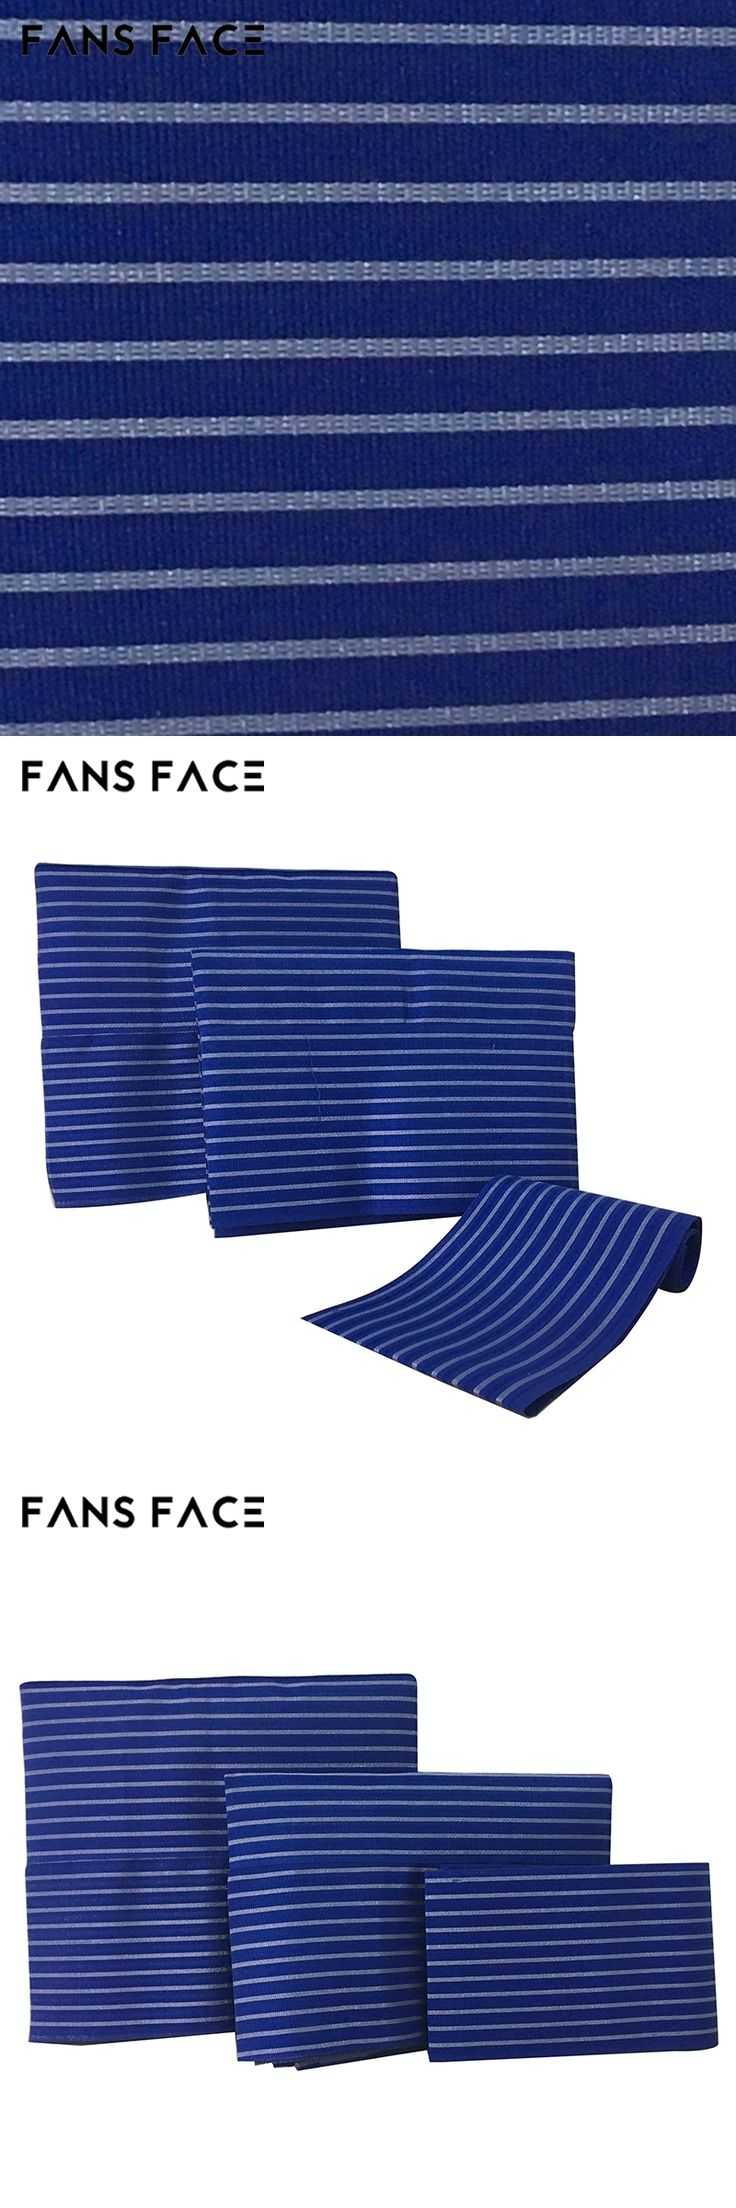 FANS FACE African Blue Headtie Nigeria Aso Oke Designs Headtie For Wedding Headwear For Women Noble Traditional African Clothing